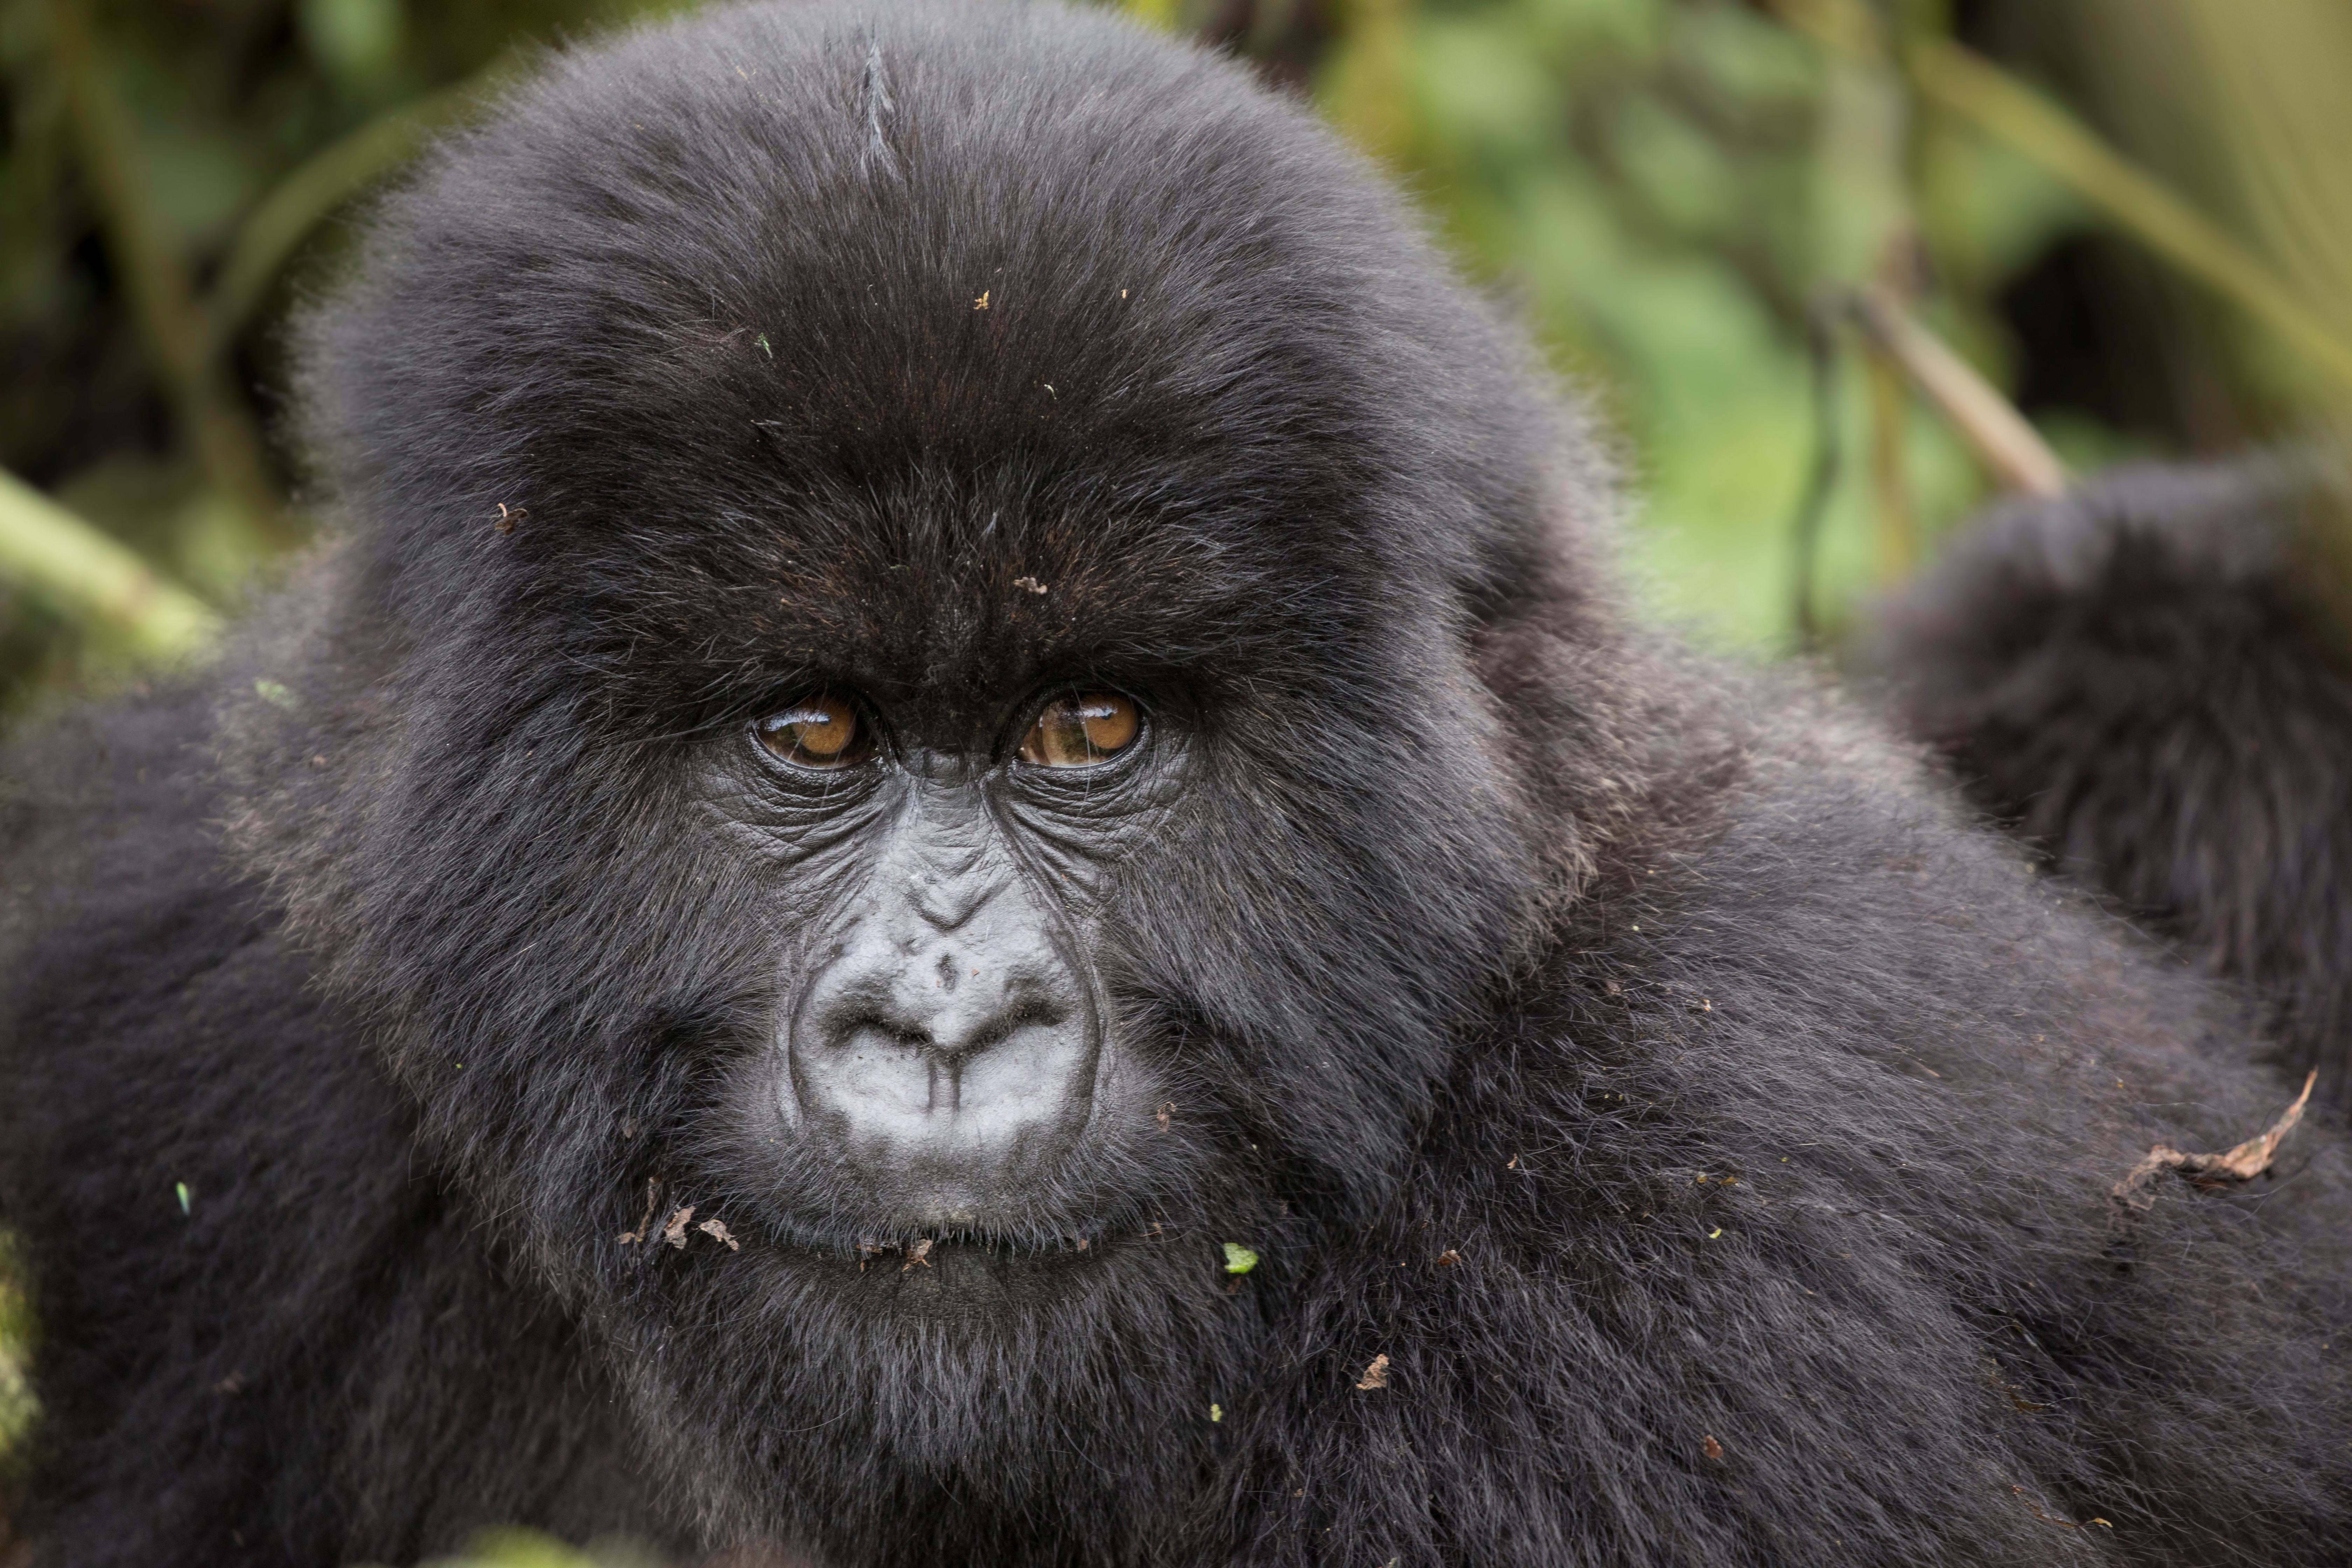 a gorilla eyes the camera in the jungles of uganda